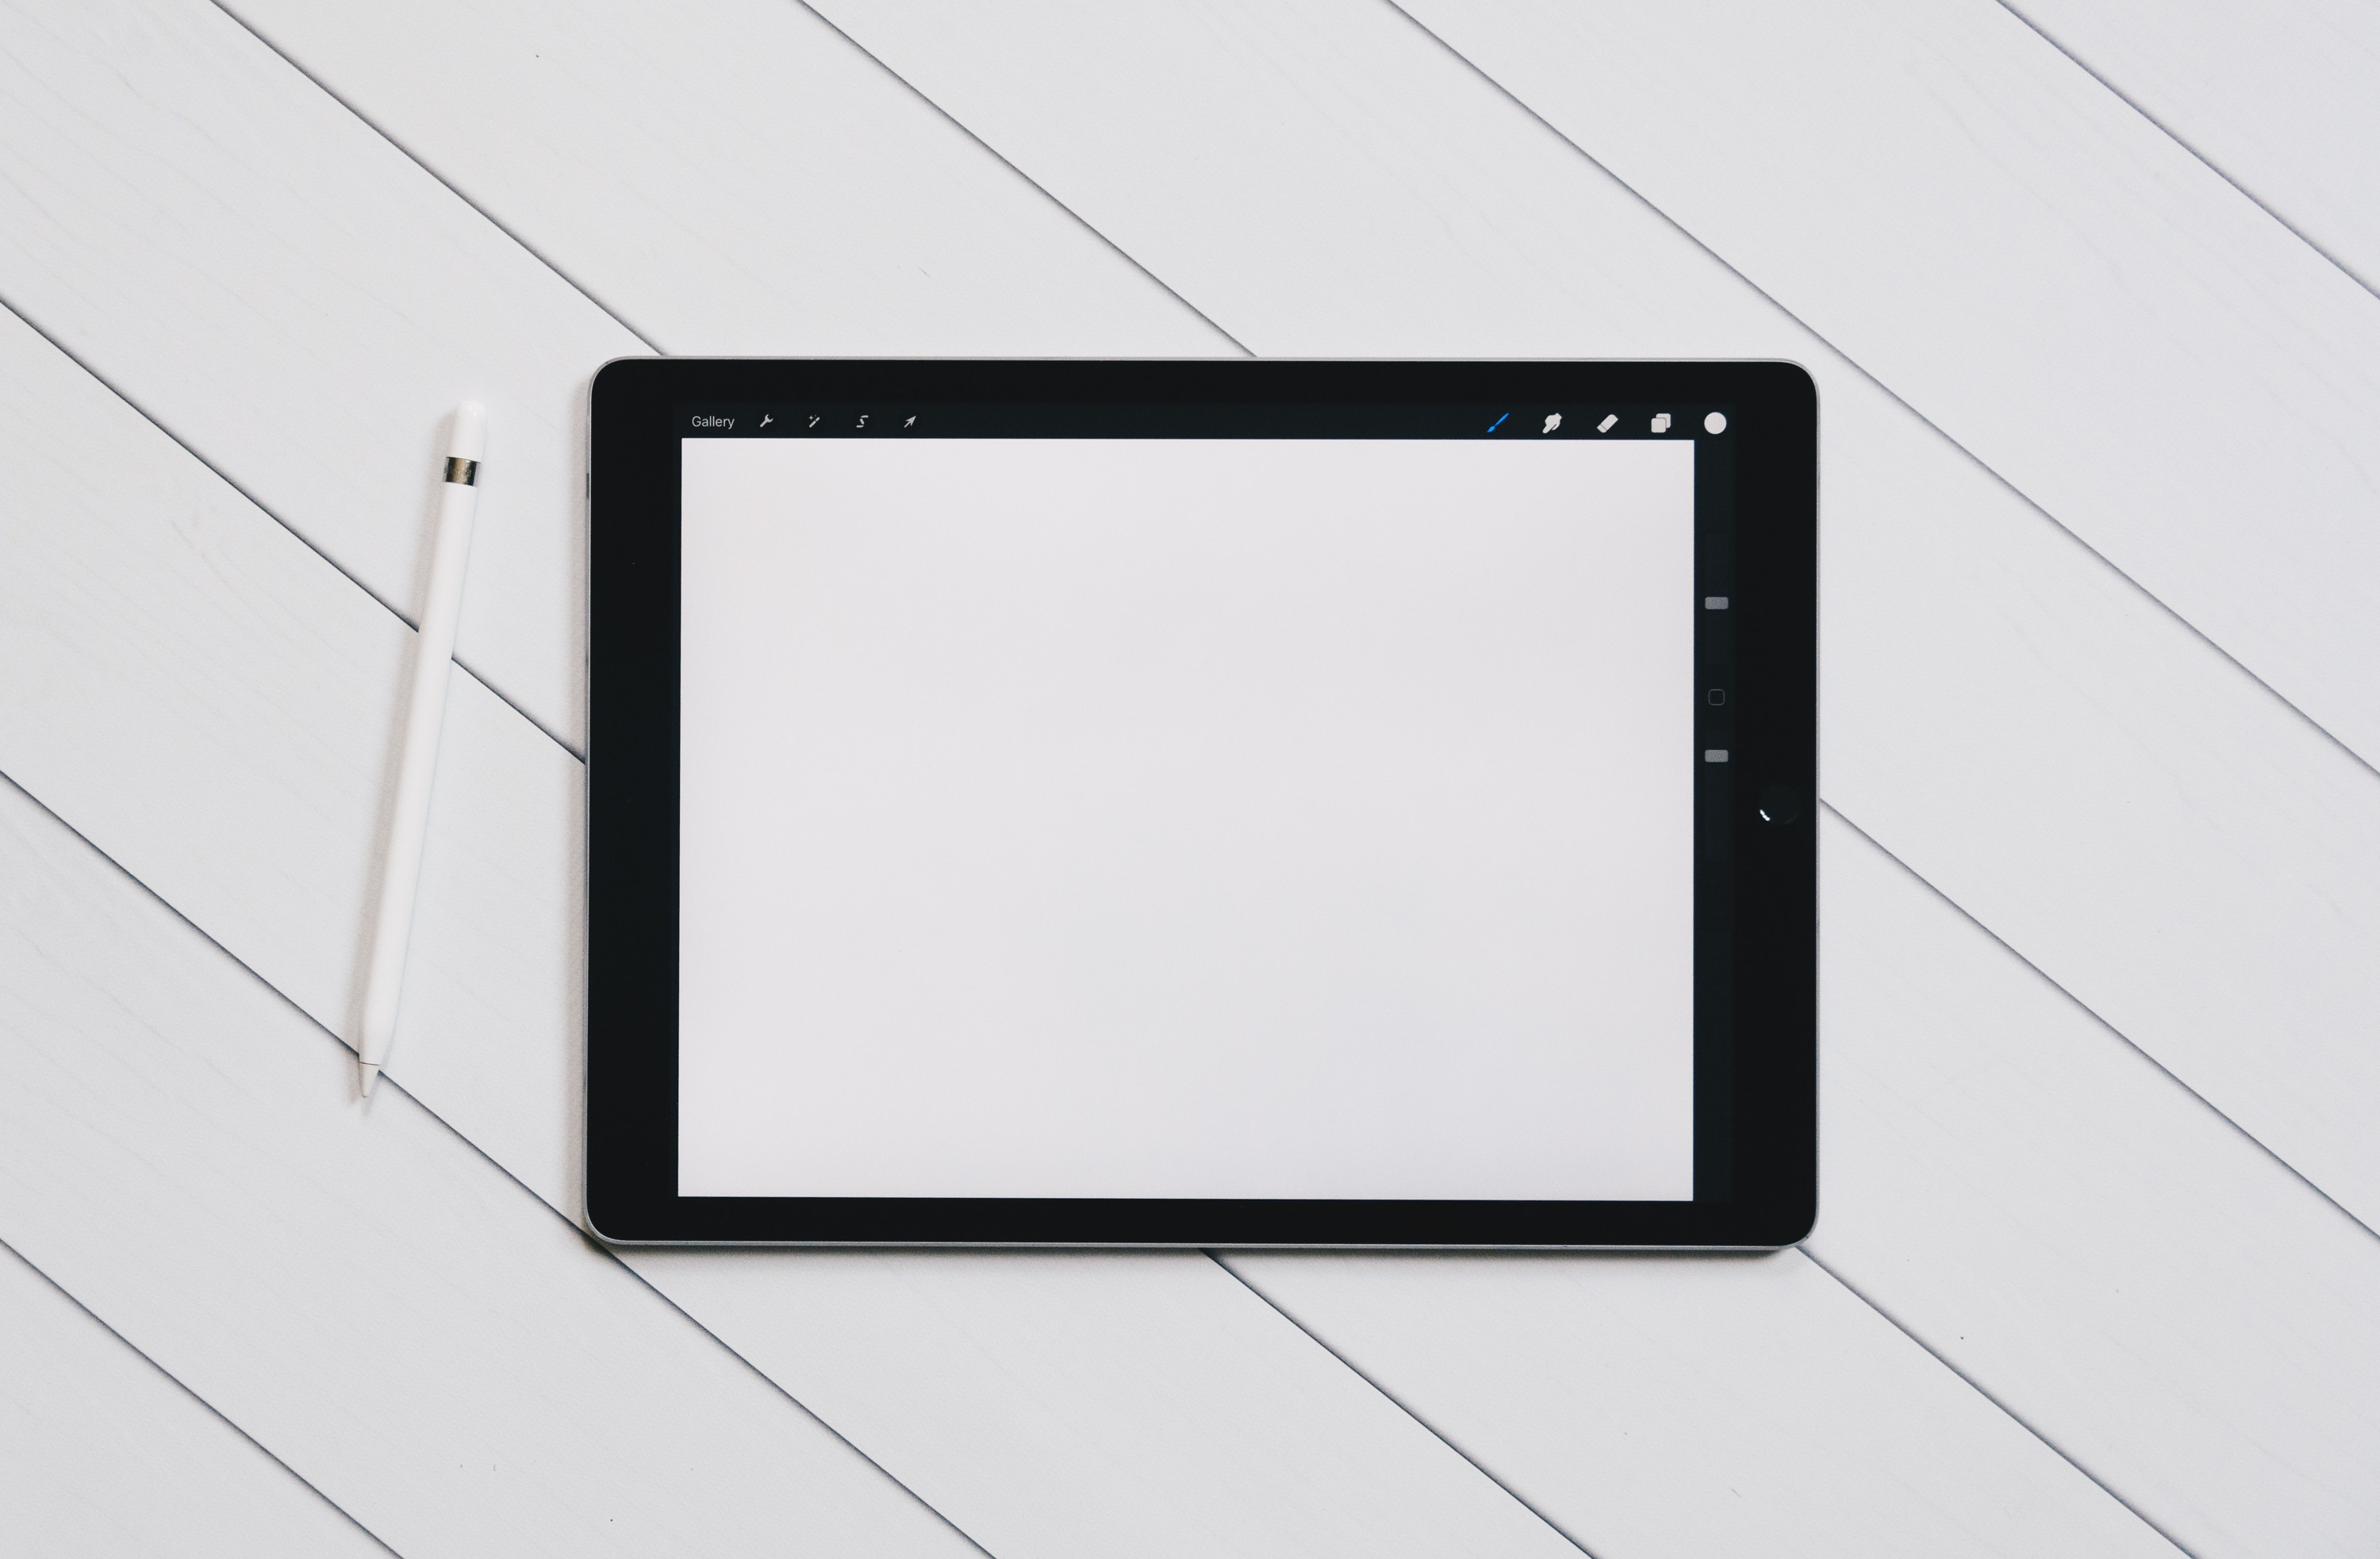 kelly-sikkema-685287-unsplash